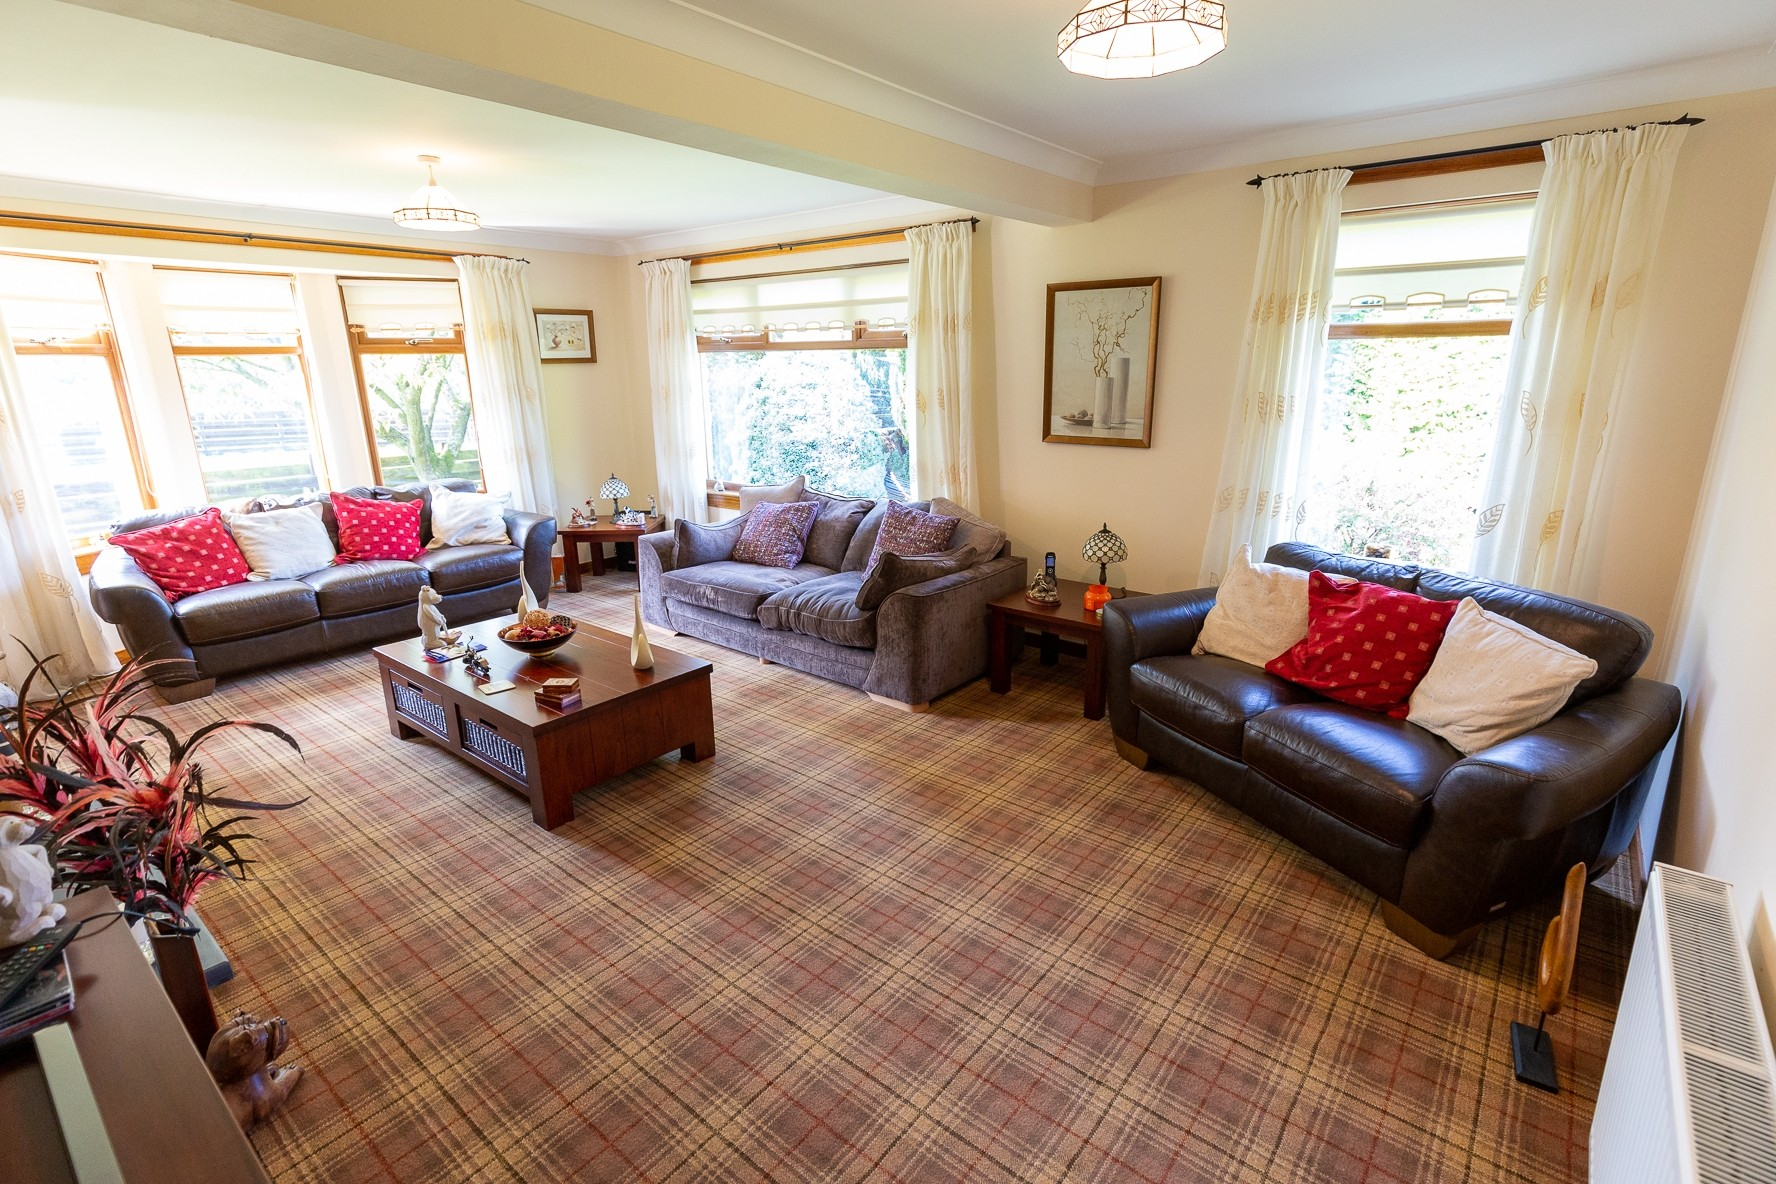 Profitable Boarding Kennels with Superb Family Home in 2.5 acres, Central Scotland - Image 3